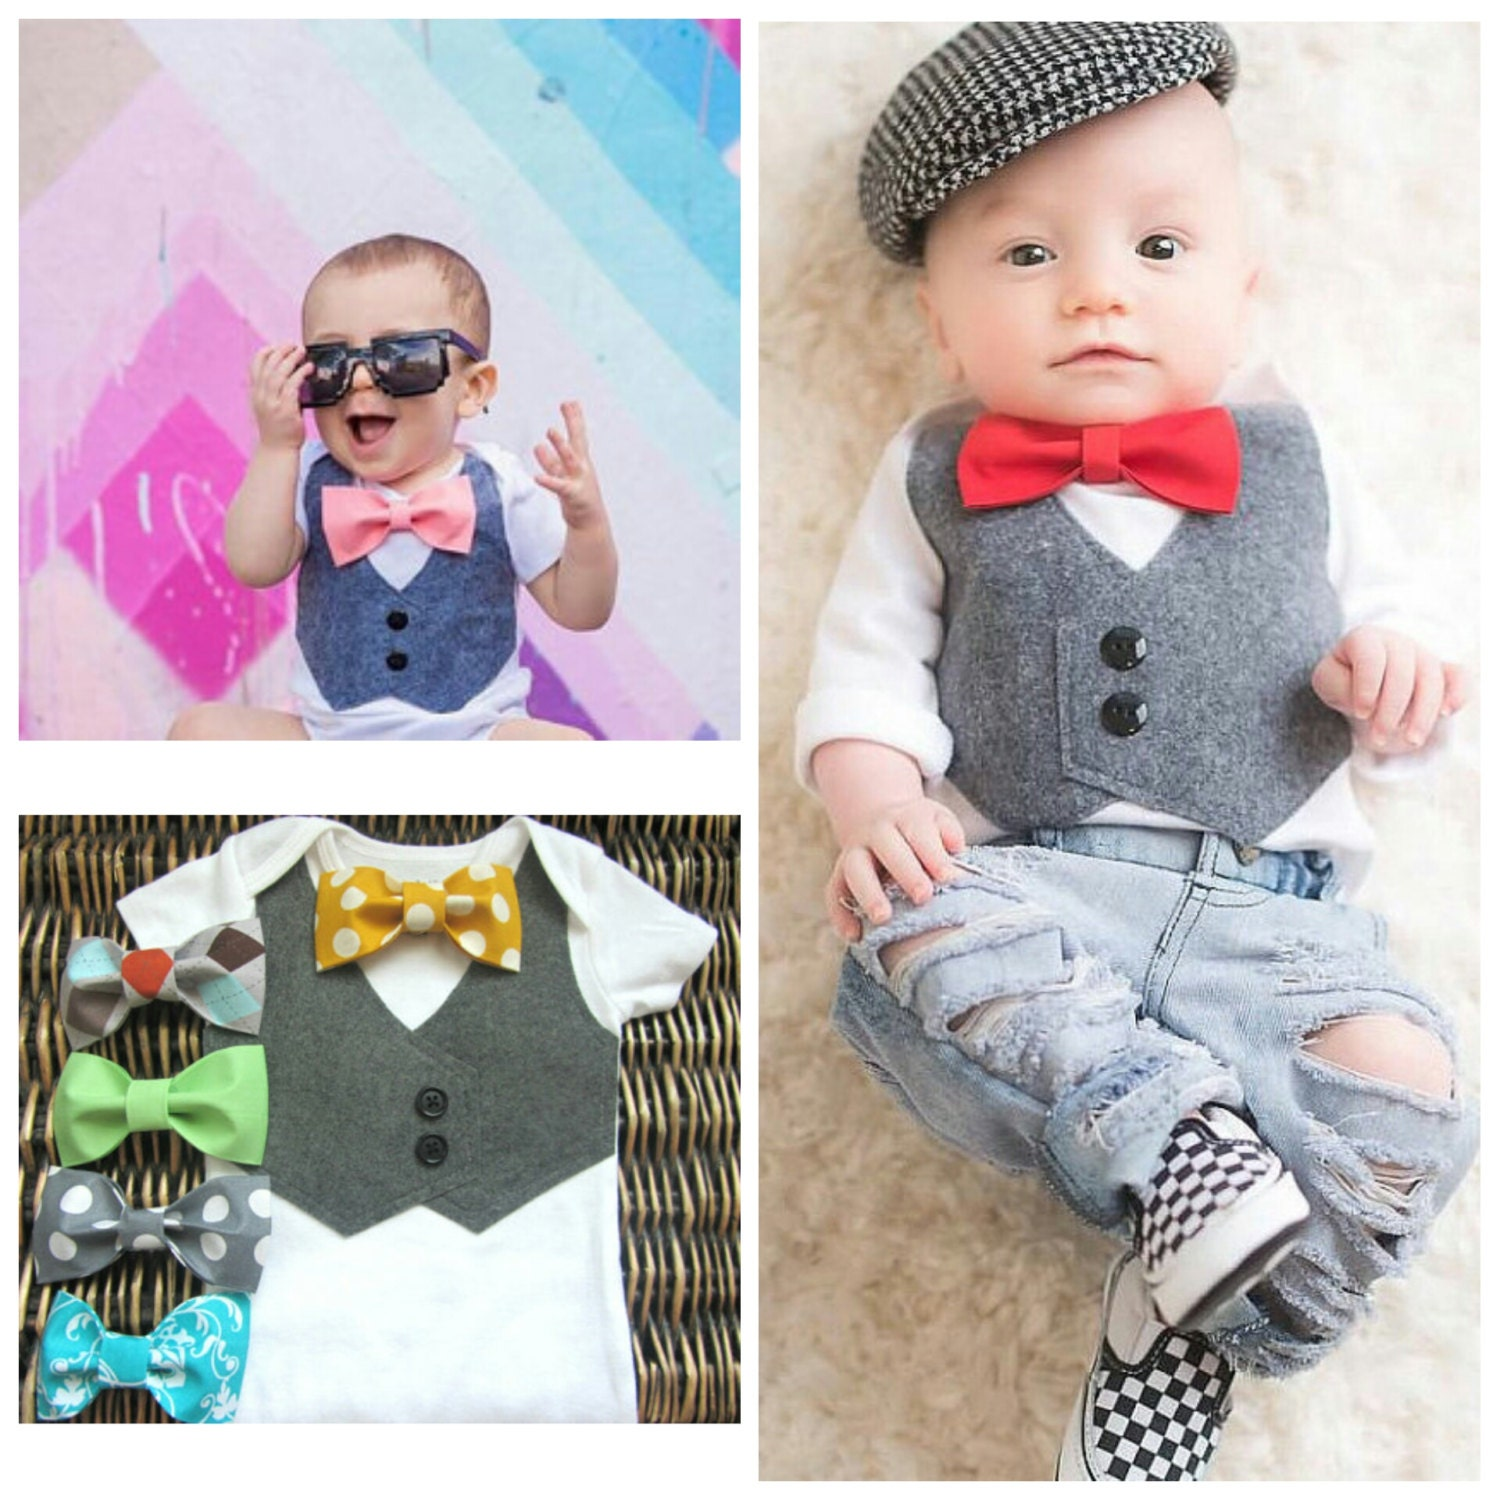 Find baby boys clothes and outfits at Gymboree. Our versatile toddler boy styles can mix and match for any occasion.